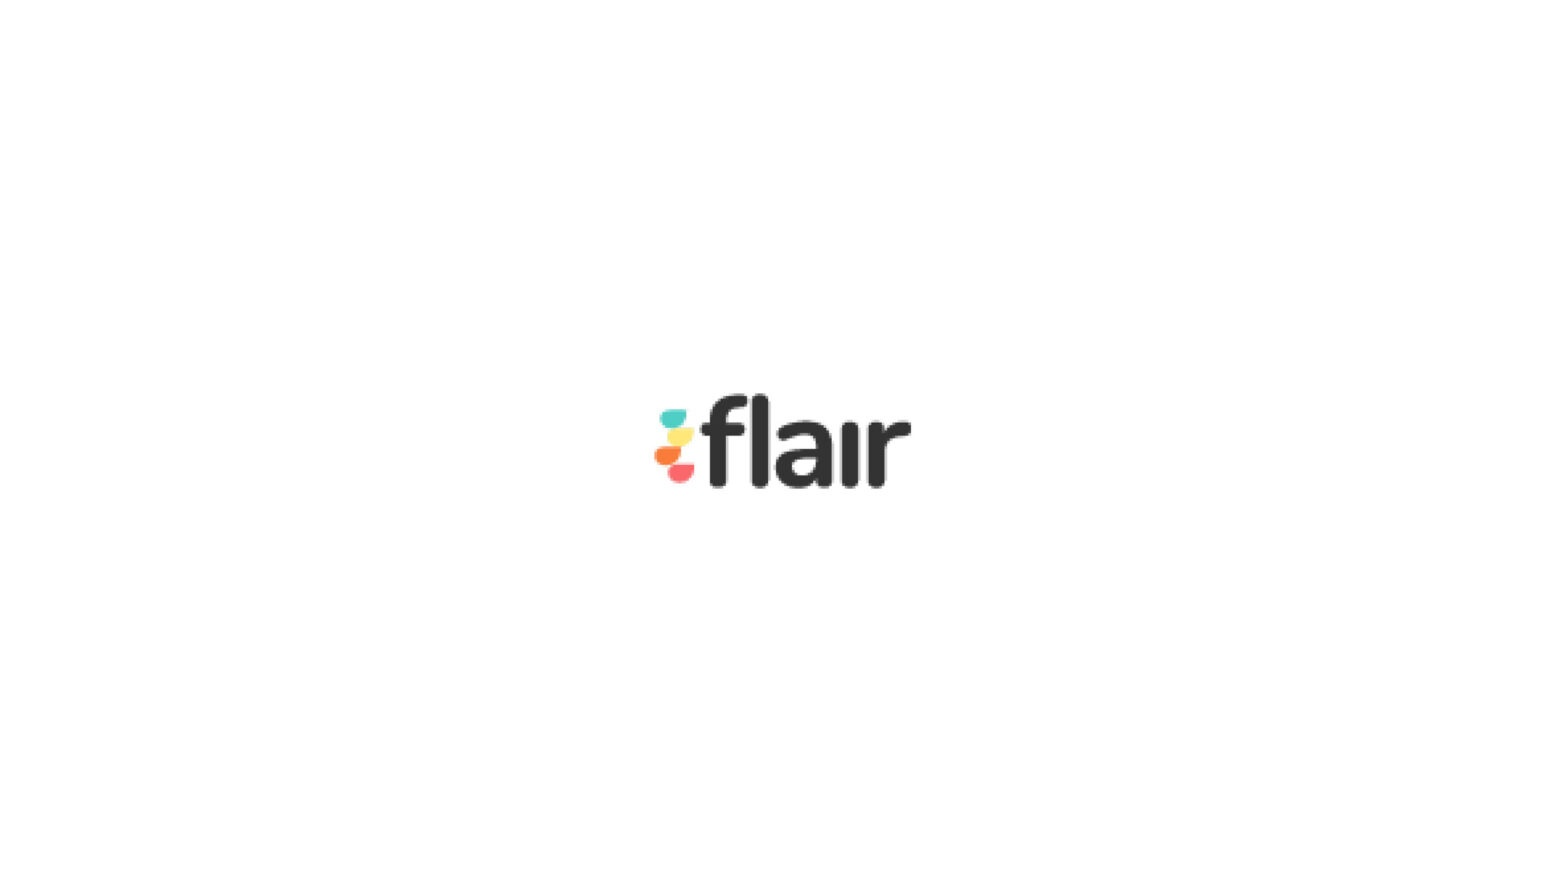 Flair: celebrating abilities and breaking down stigmas